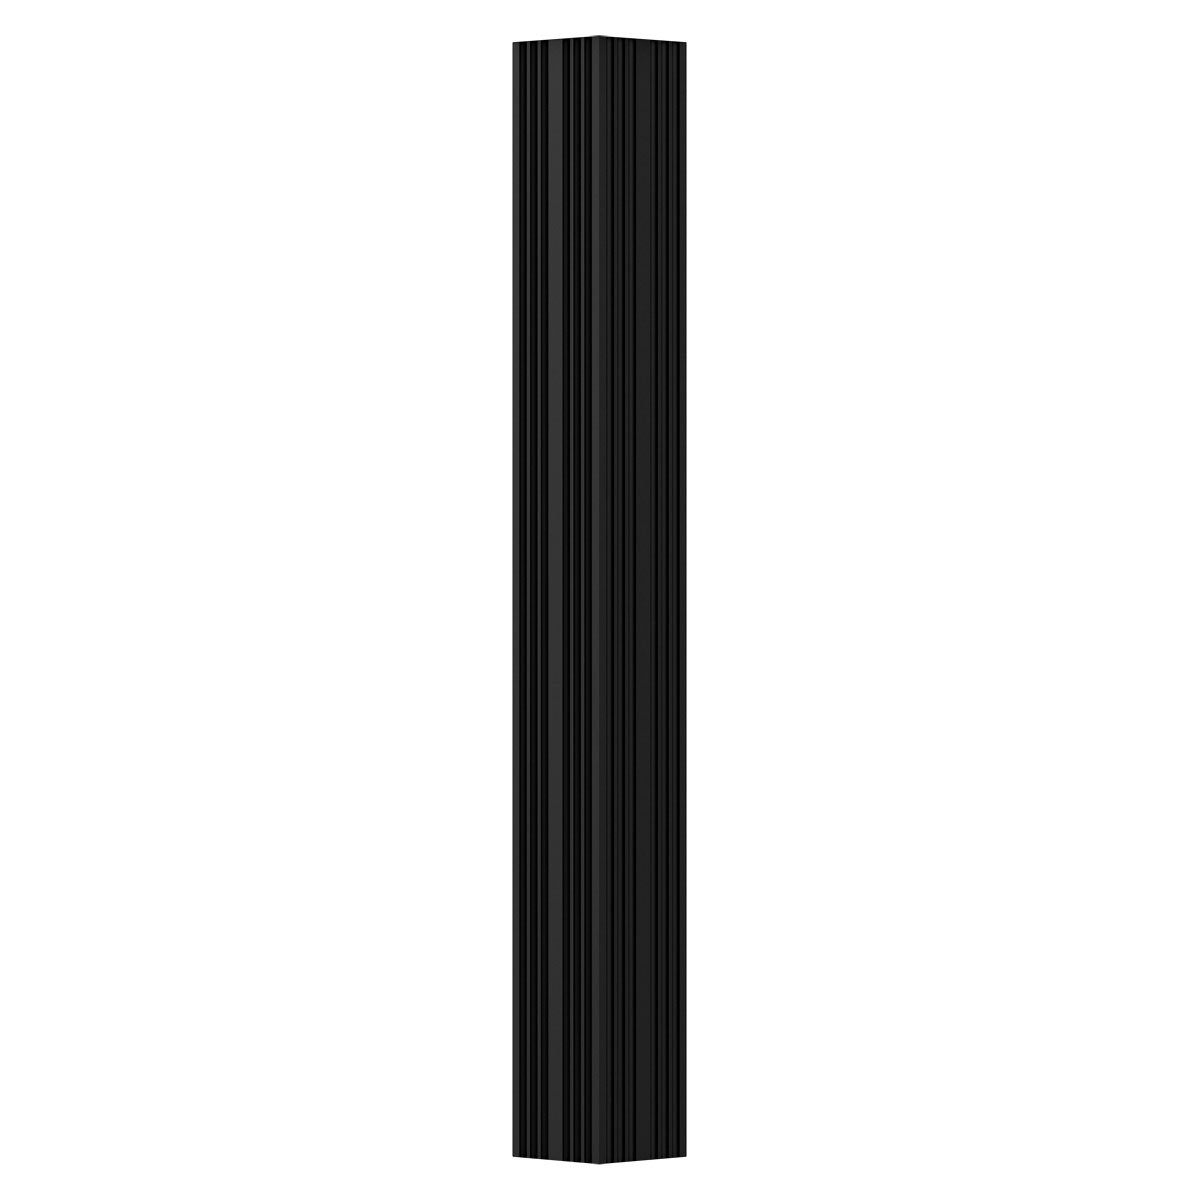 Fluted Non-Tapered Textured Brown Finish w// Capital /& Base AFCO EA0408INFSFTUTU 4 x 8 Endura-Aluminum Column Square Shaft For Post Wrap Installation